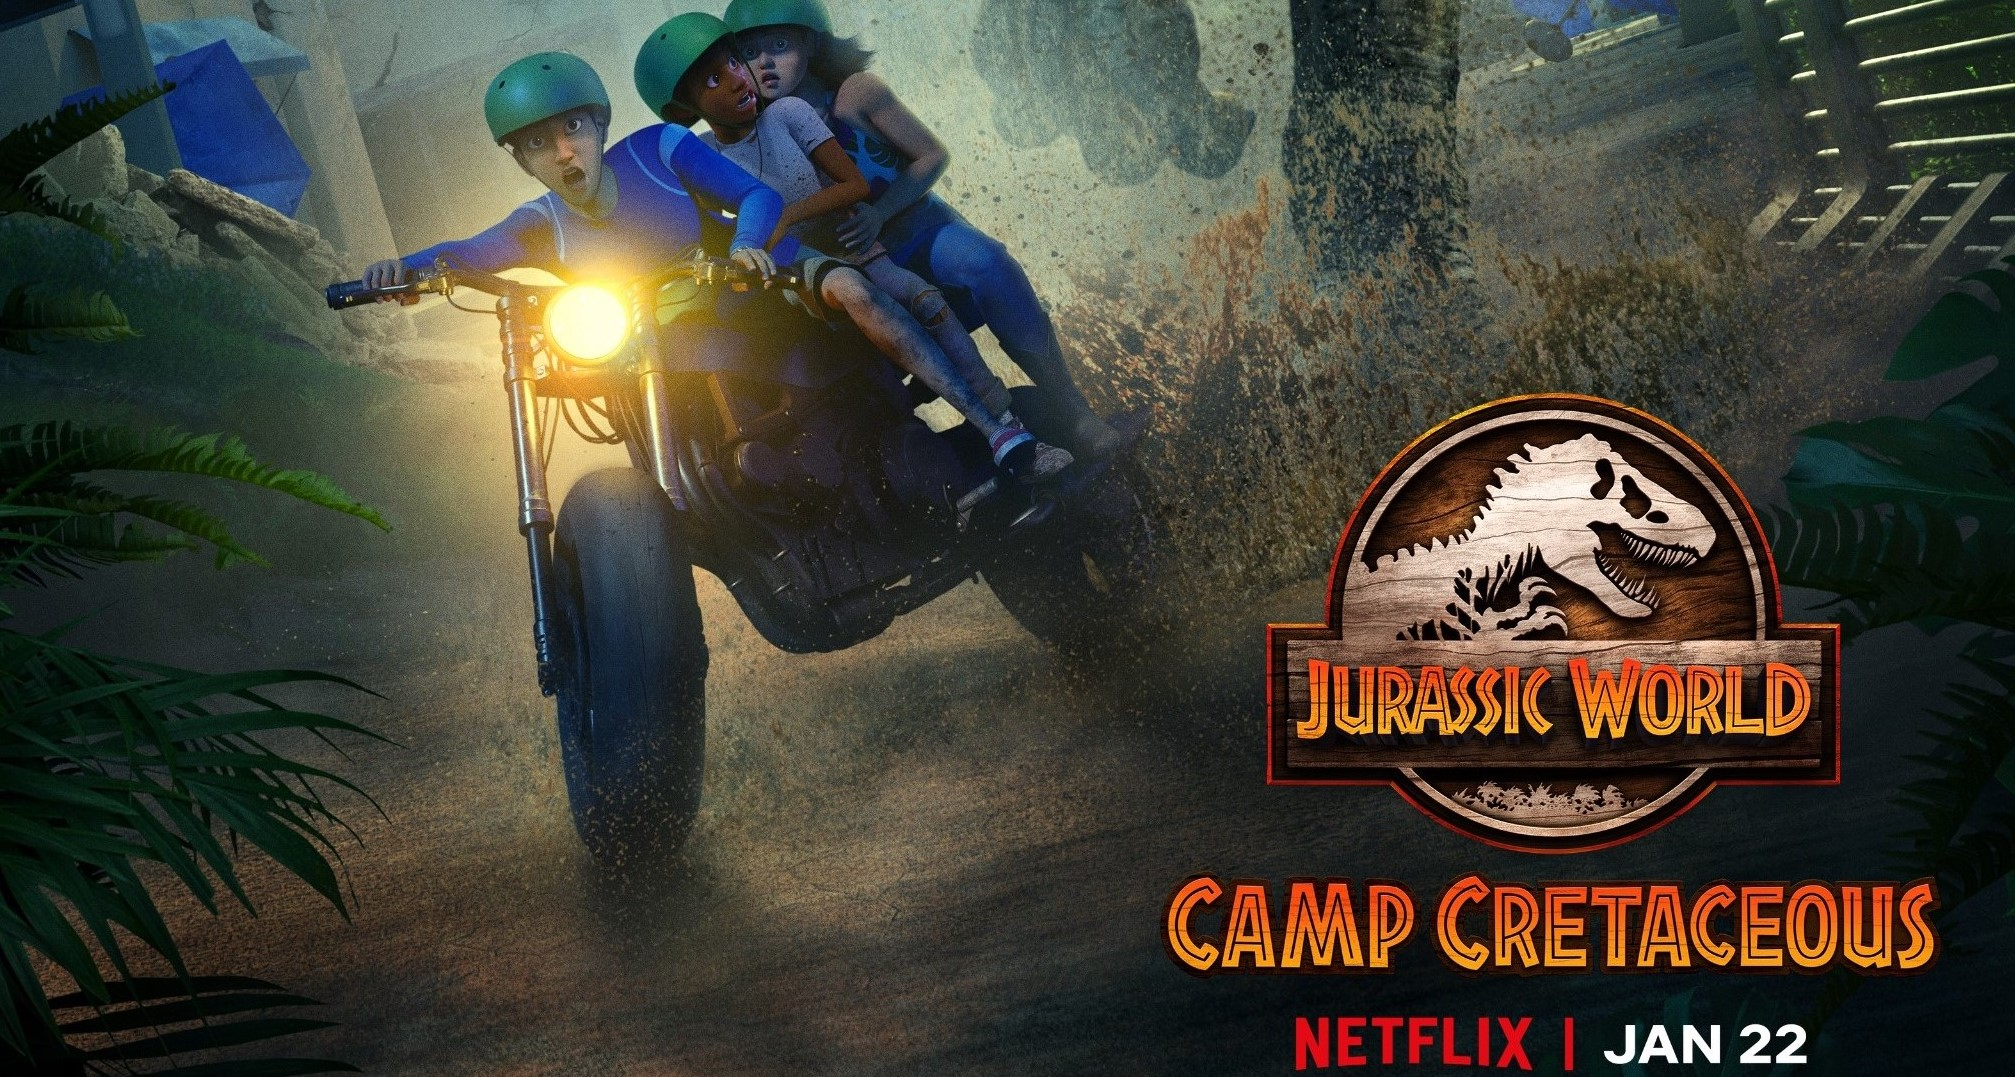 'Jurassic World: Camp Cretaceous' Season 2 Coming January 22 – New Trailer!